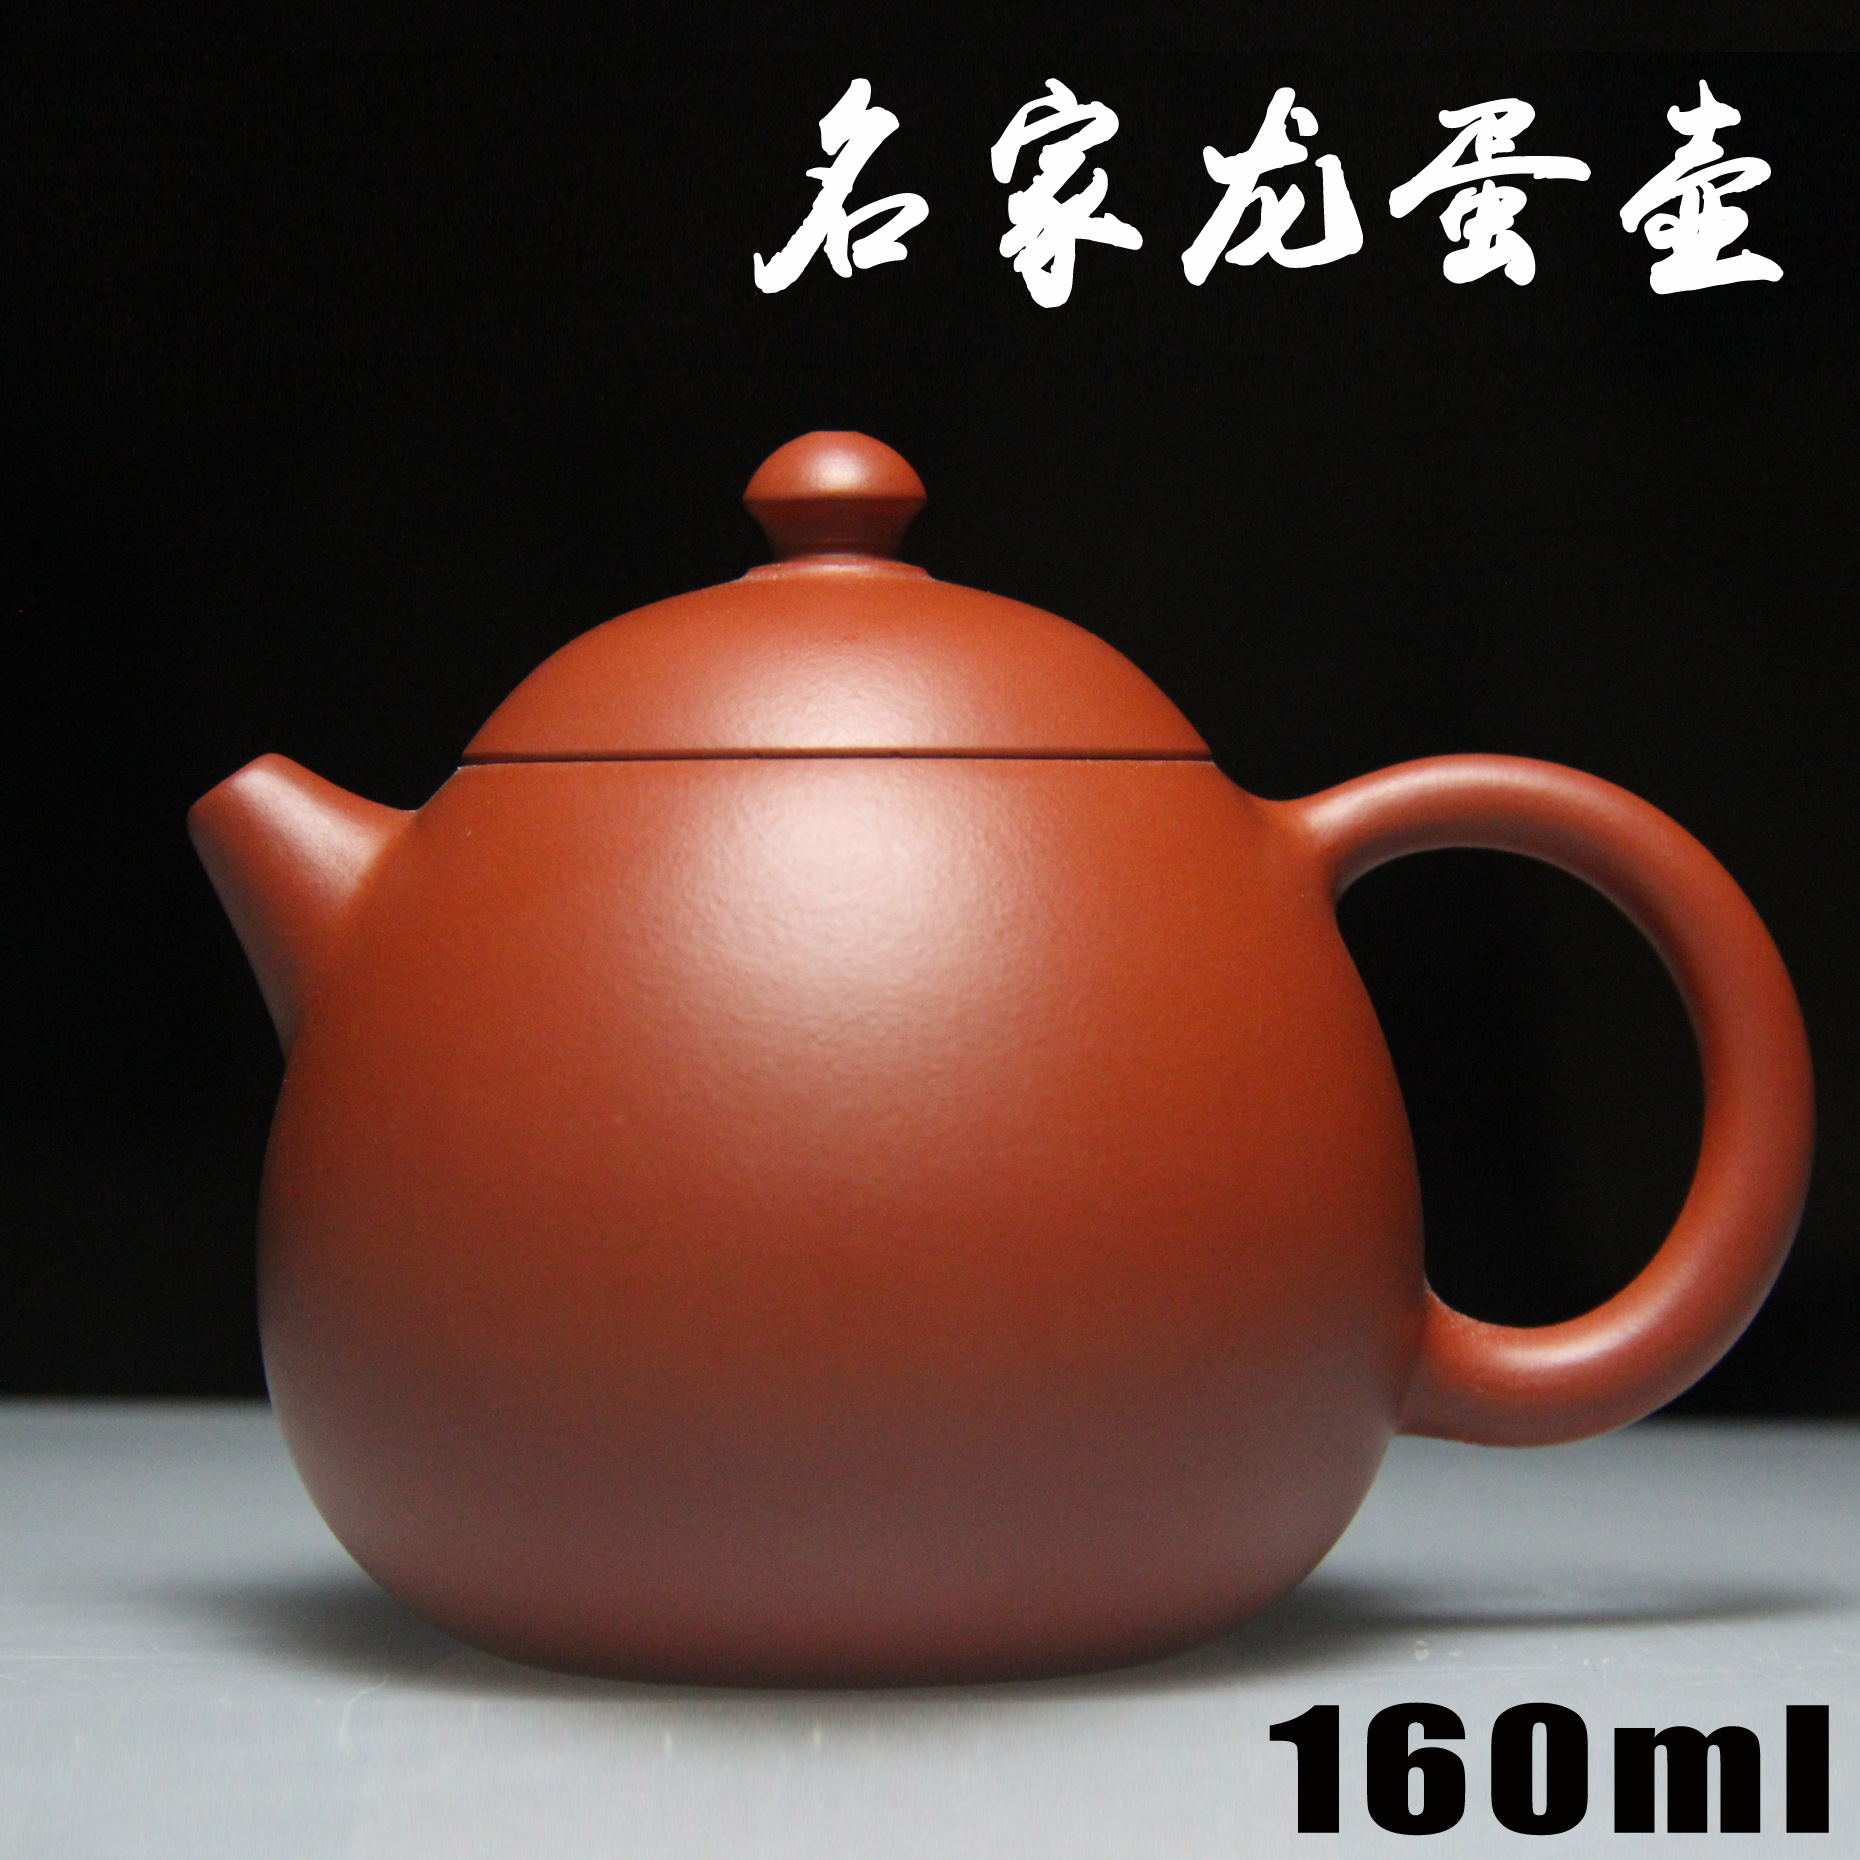 145 egg pot authentic Yixing teapot famous handmade teapot gold ore Zhu mud abalone wholesale and retail